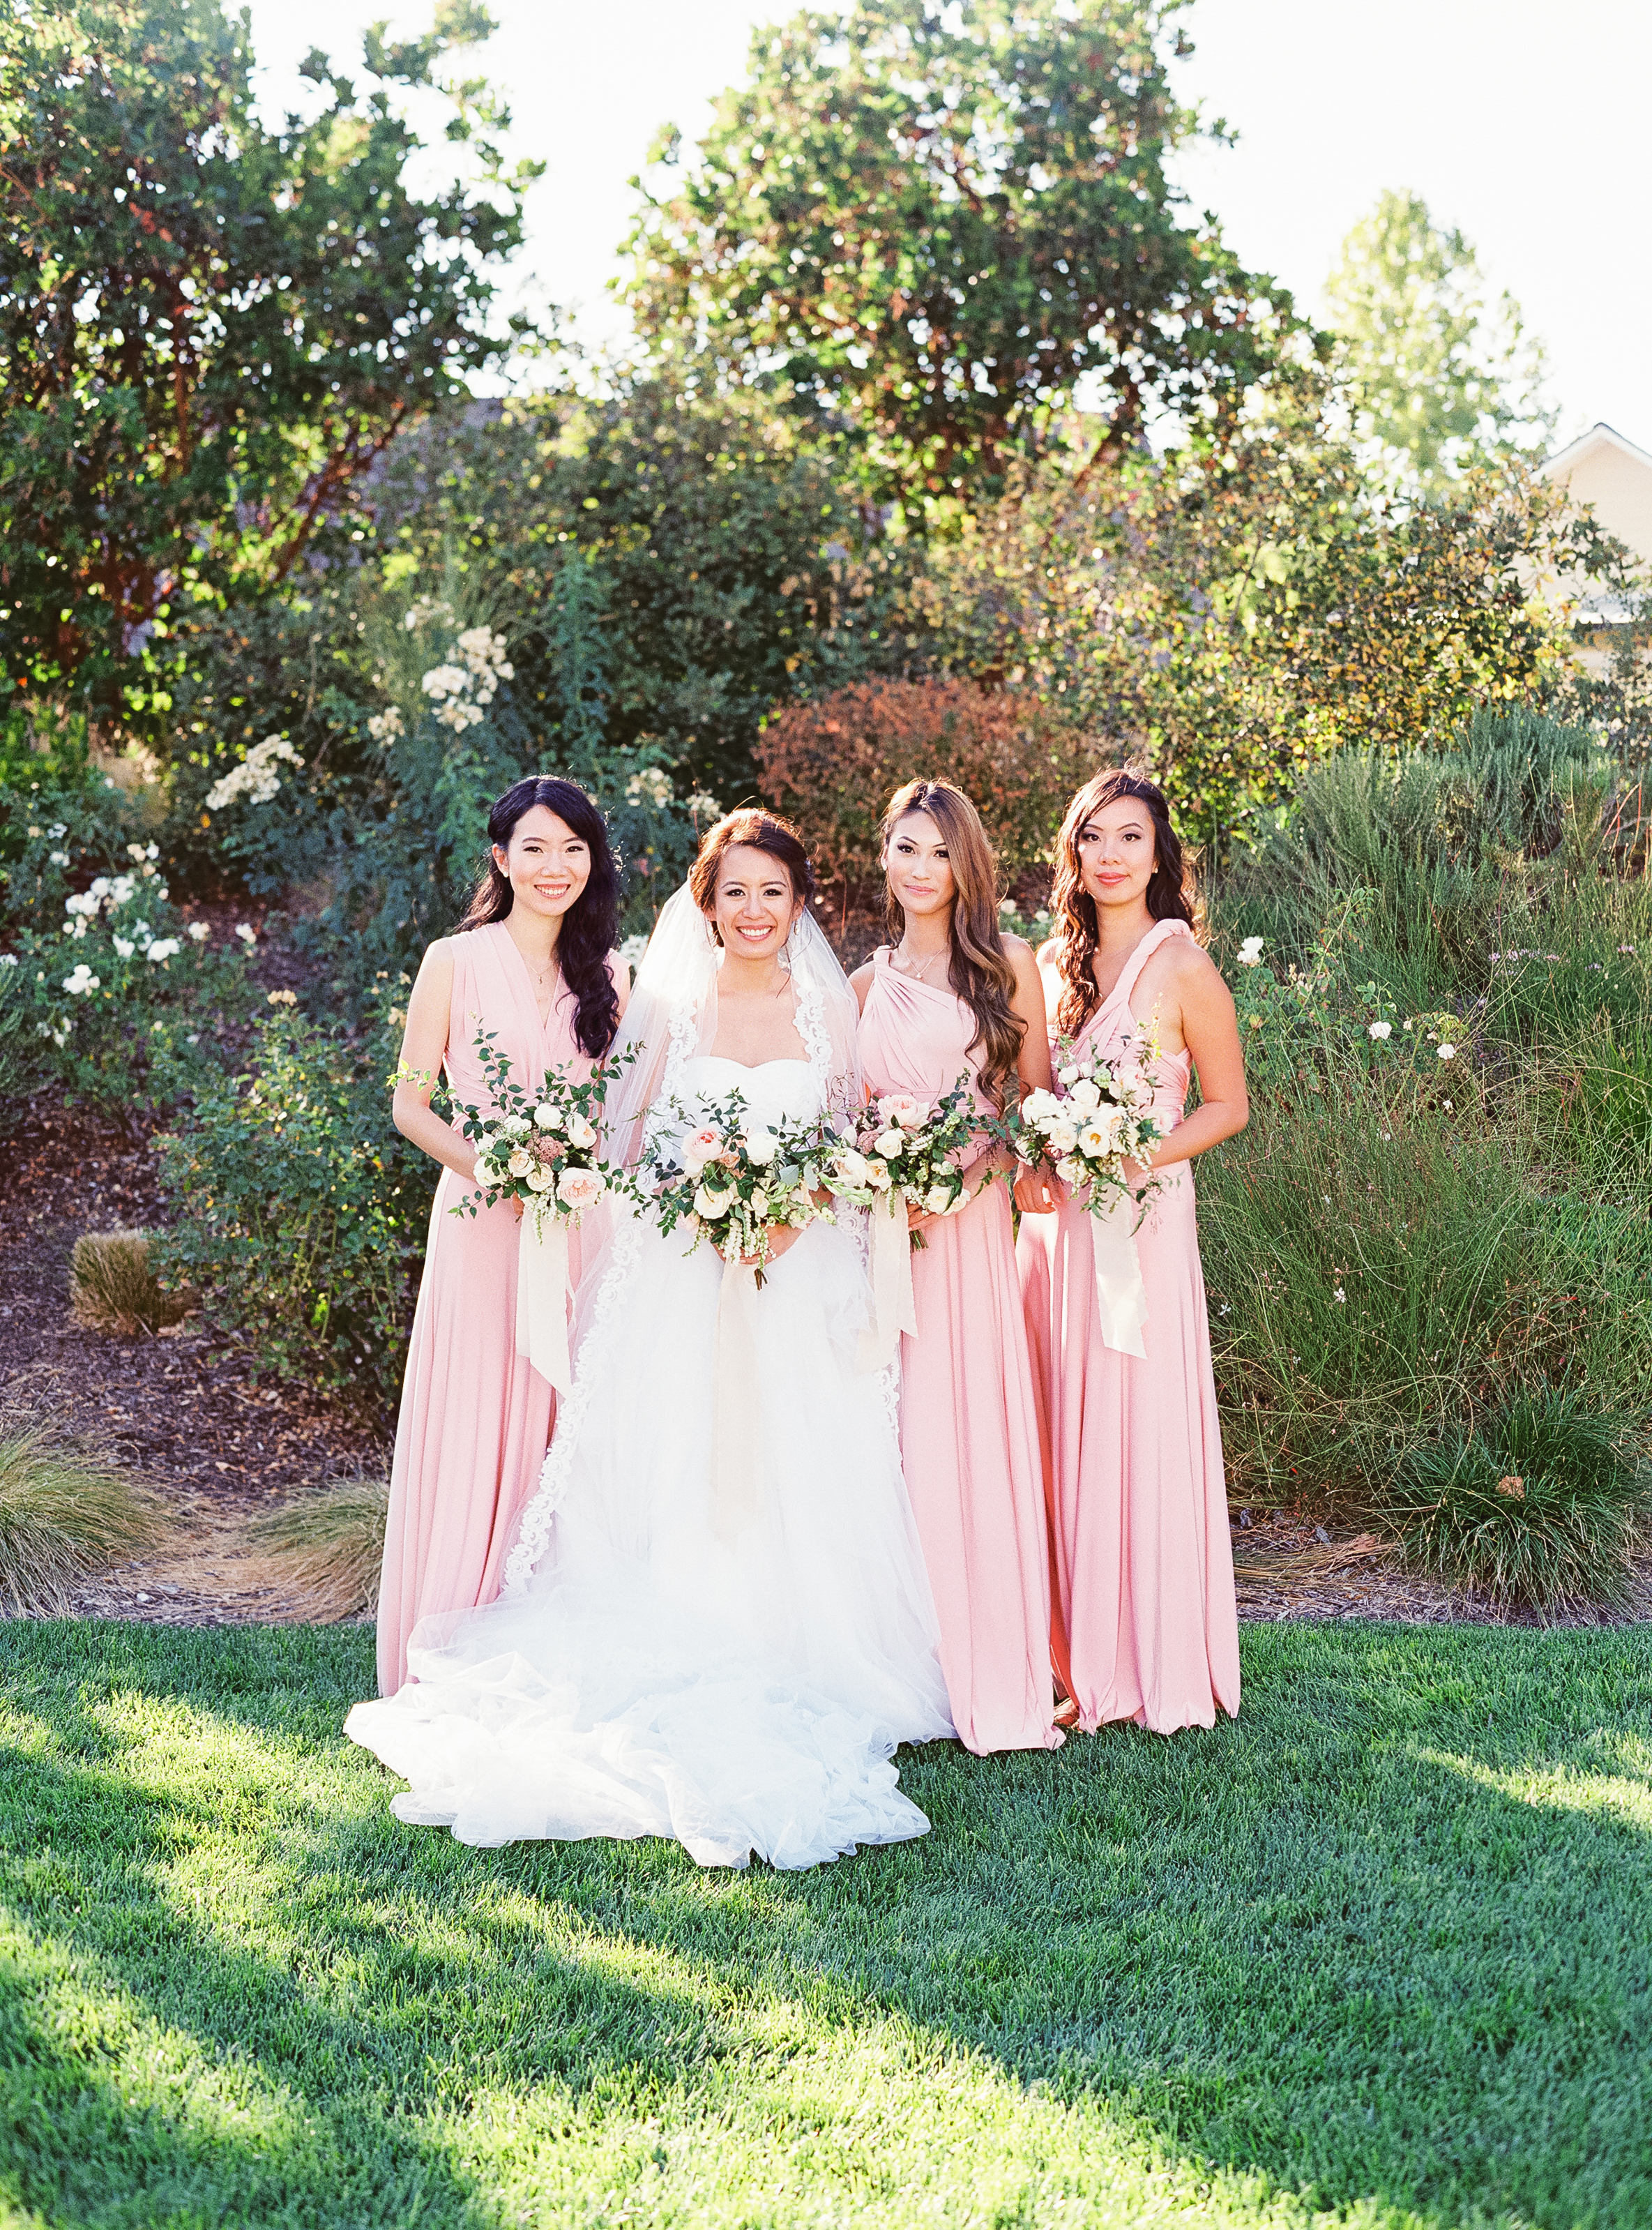 Napa Valley Wedding | Michele Beckwith | Chinese Wedding | Vineyard Wedding | Fine Art Wedding Blog | Joy Wed | Canadian Wedding Blog | Blush Bridesmaids Dress